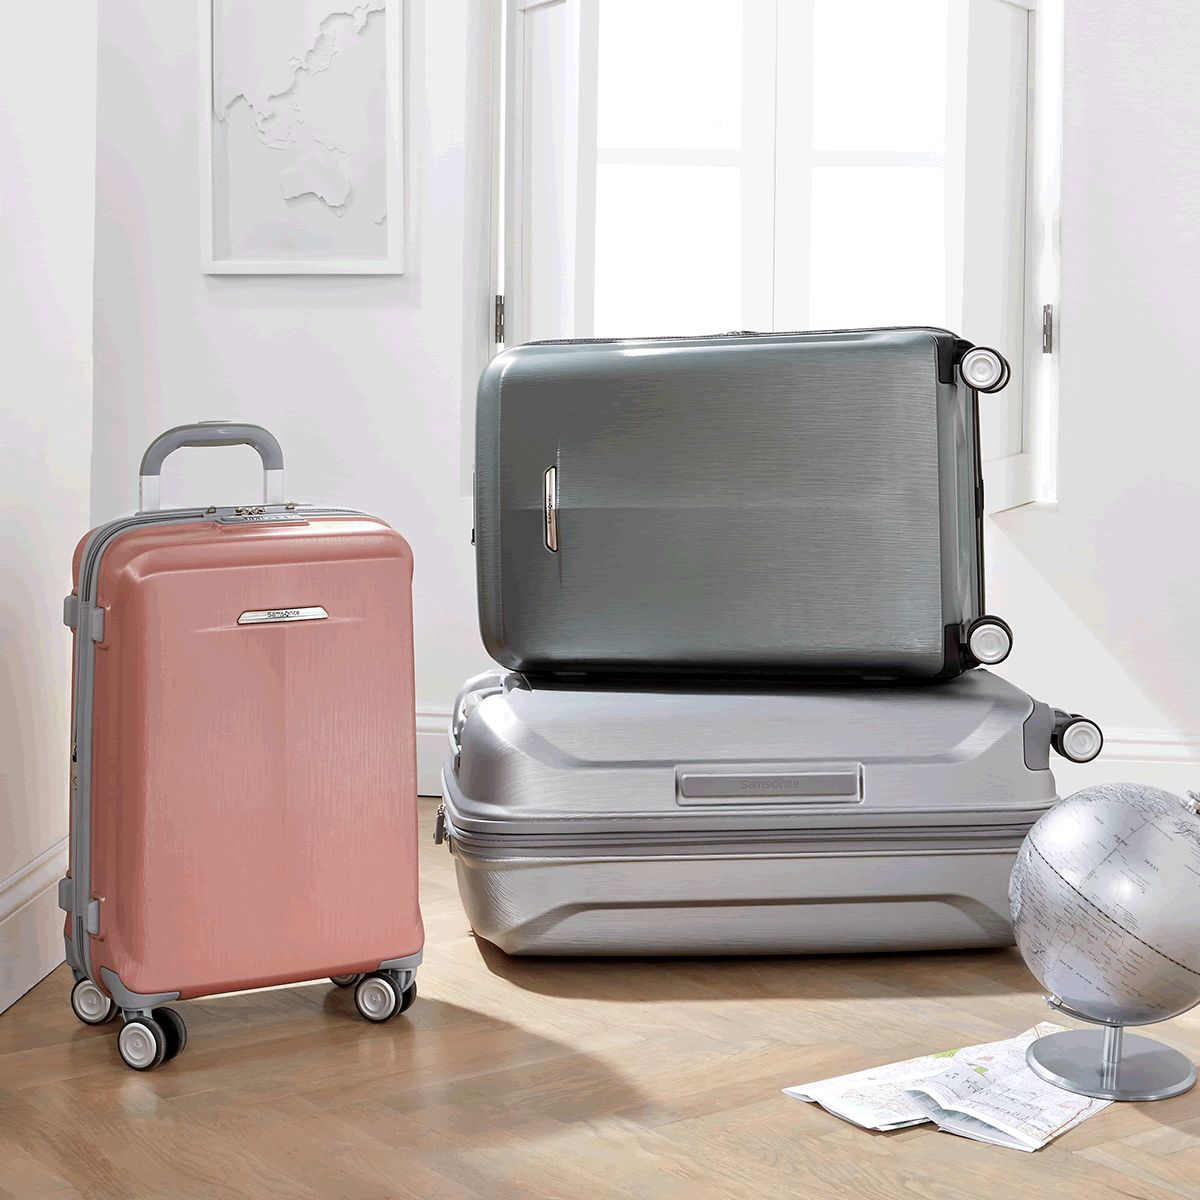 3b275c2dd6e2 Hardside Luggage - Macy's